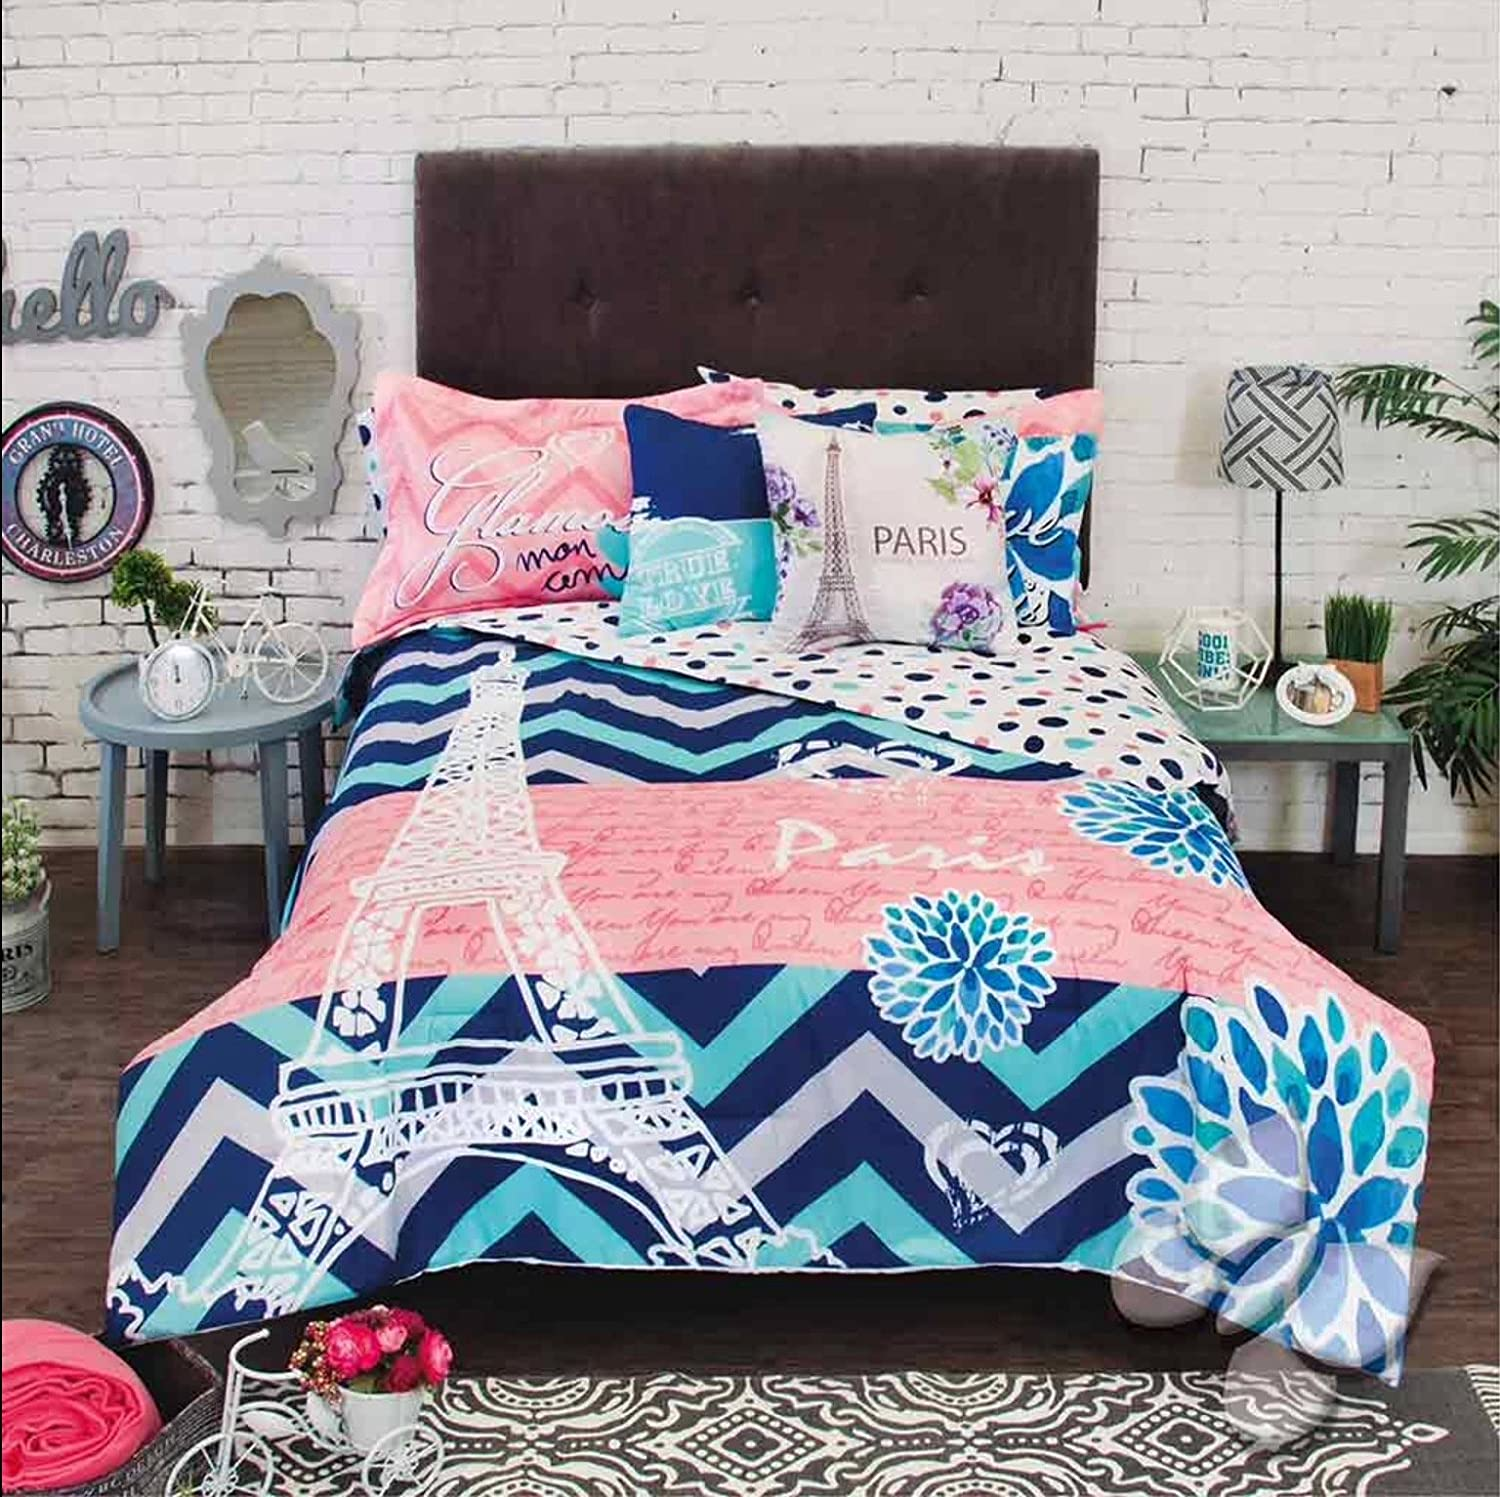 bed details comforter taste comforters solid blue king of with very sets good image